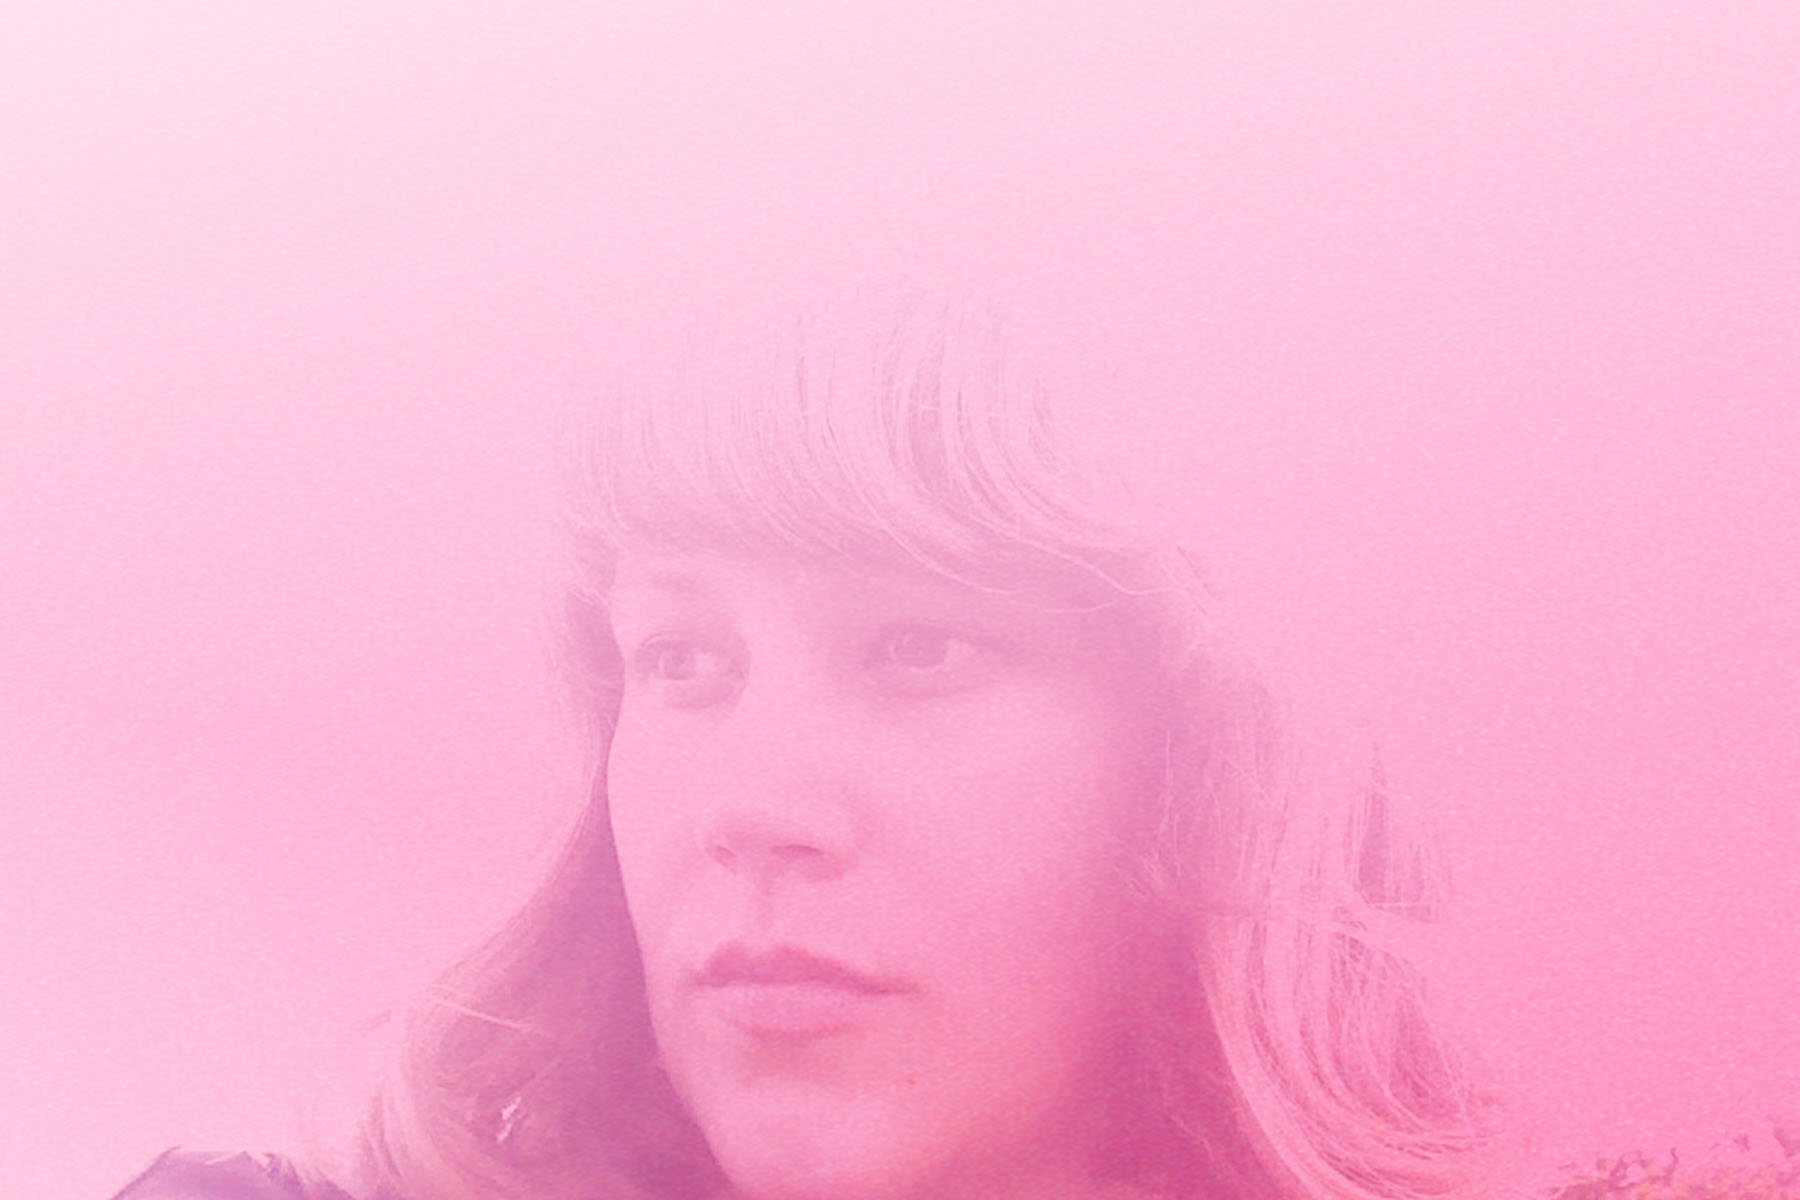 White Poppy shares 'Love Potion' from upcoming release The Pink Haze Of Love